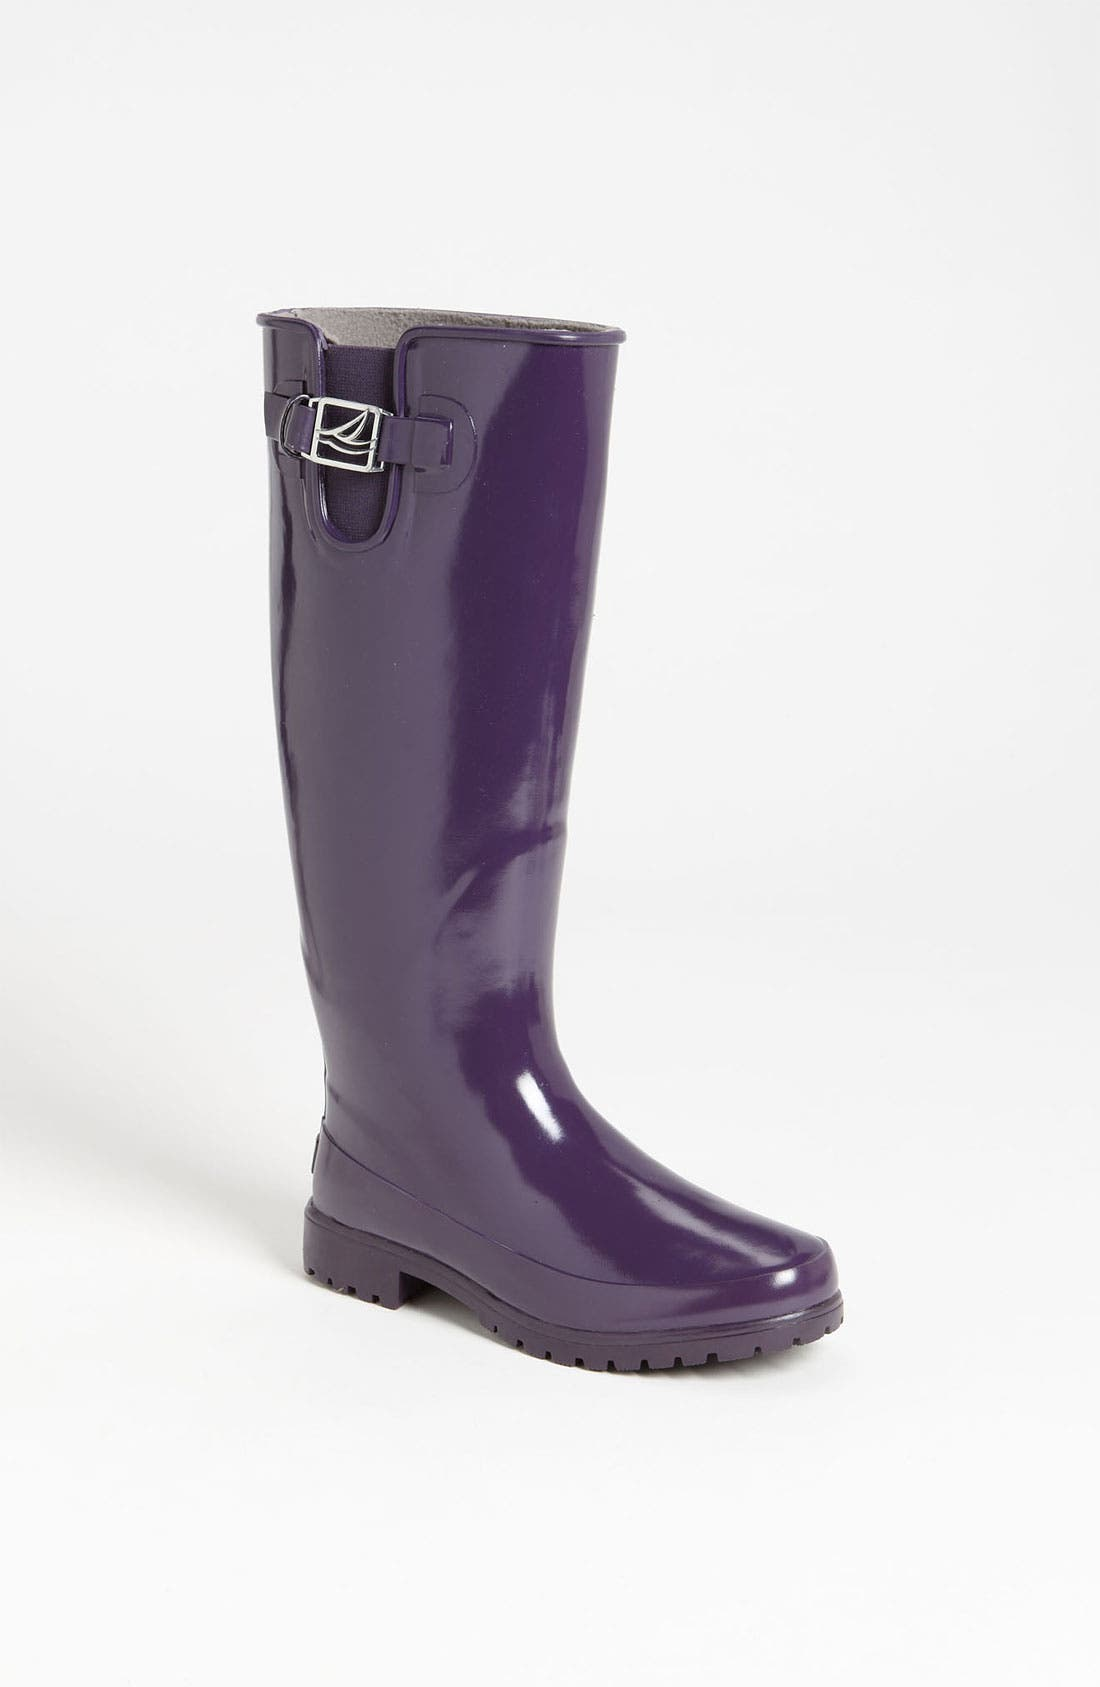 Alternate Image 1 Selected - Sperry Top-Sider® 'Pelican Too' Rain Boot (Women)